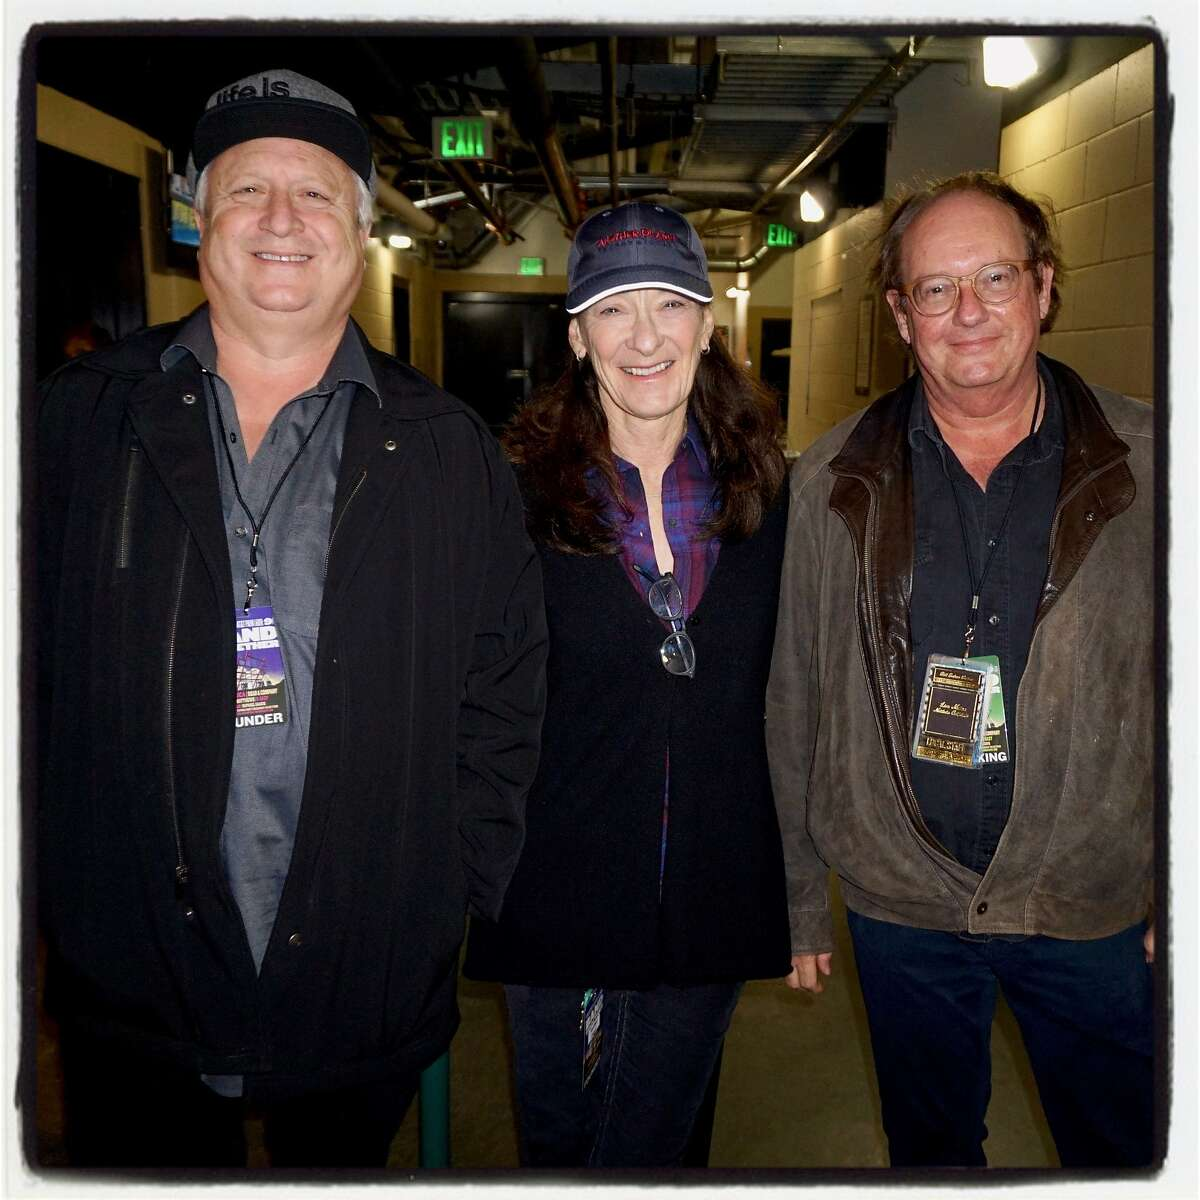 Another Planet cofounders Gregg Perloff and Sherry Wasserman (left) with Live Nation VP Michael Bailey at AT&T Park for Band Together. Nov. 9, 2017.